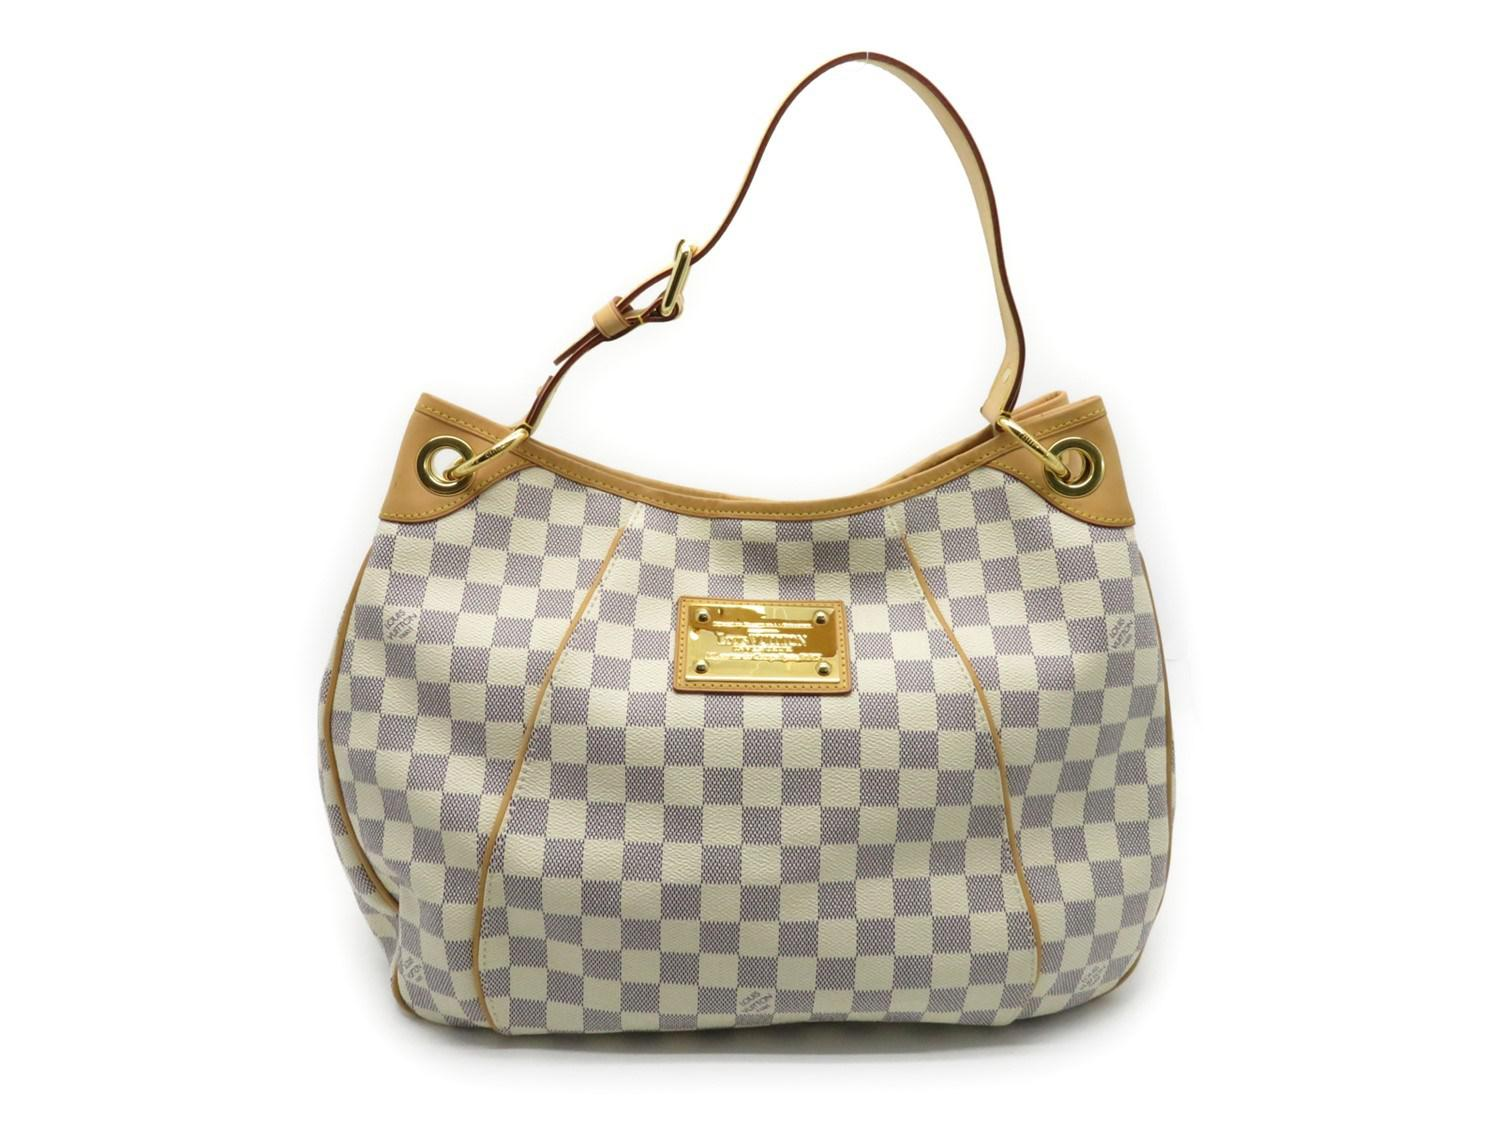 Lyst - Louis Vuitton Damier Azur Galliera Pm Shoulder Bag White ... f8799e7a7e32b